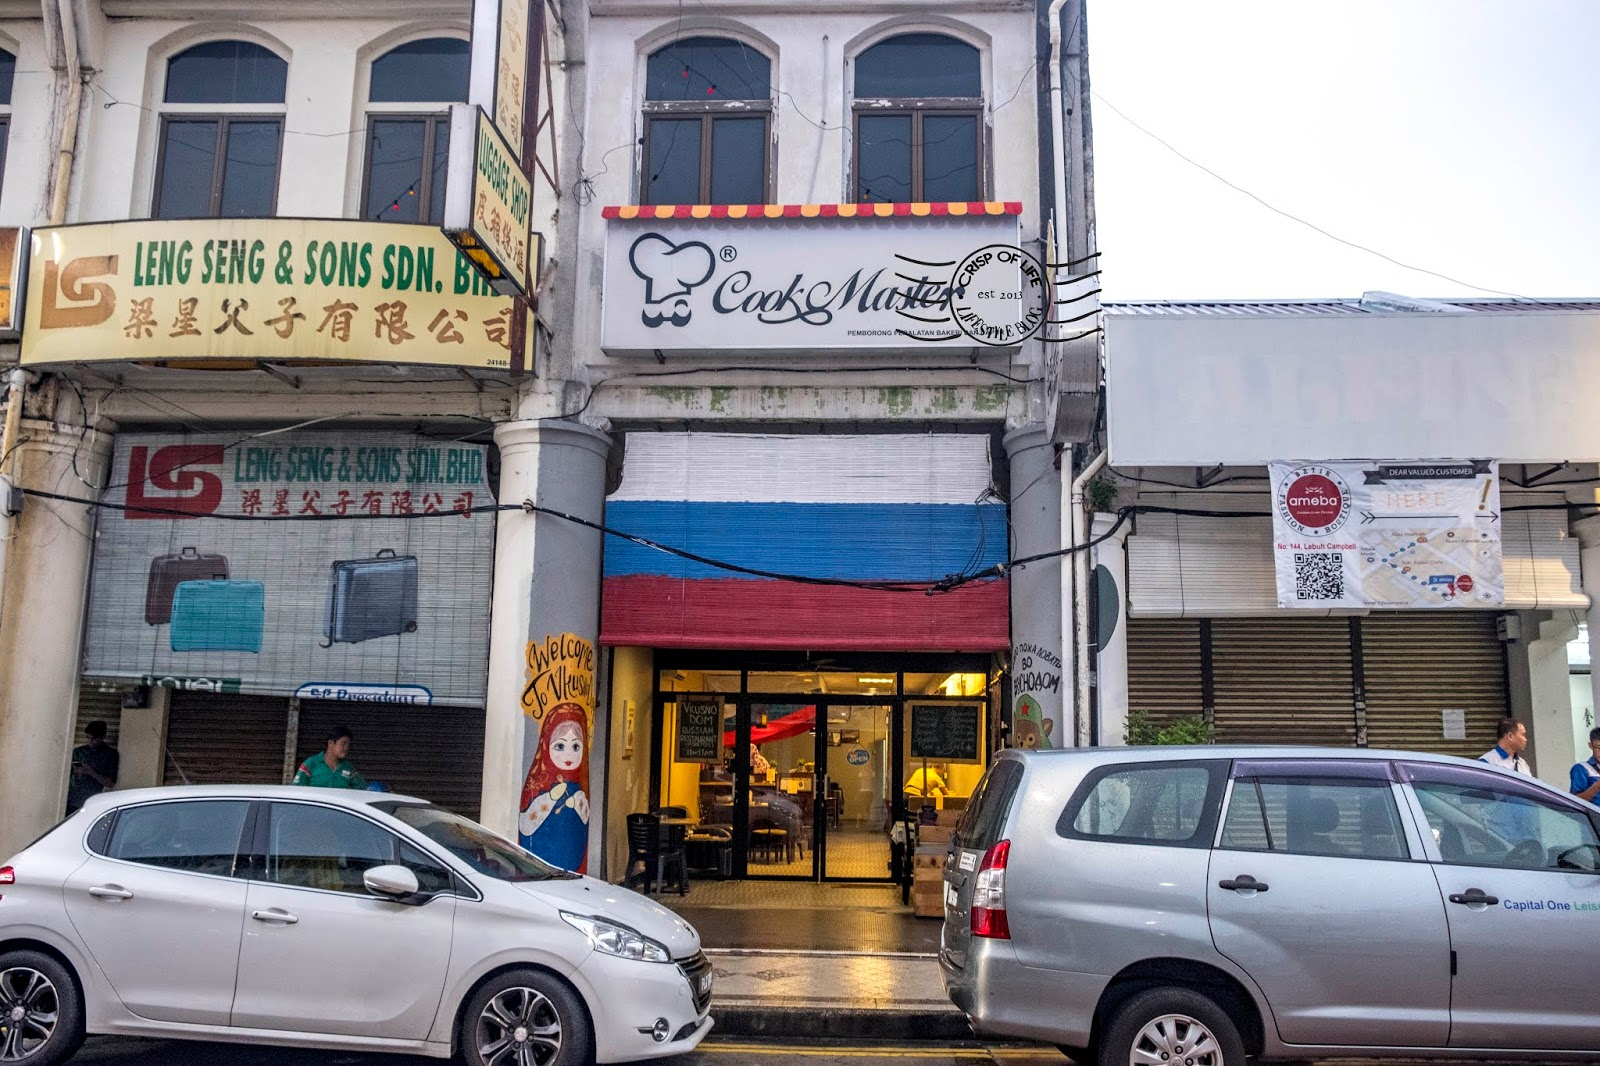 Vkusno Dom, The Authentic Eastern European Cuisine (Russian) @ Lebuh Campbell, Georgetown Penang